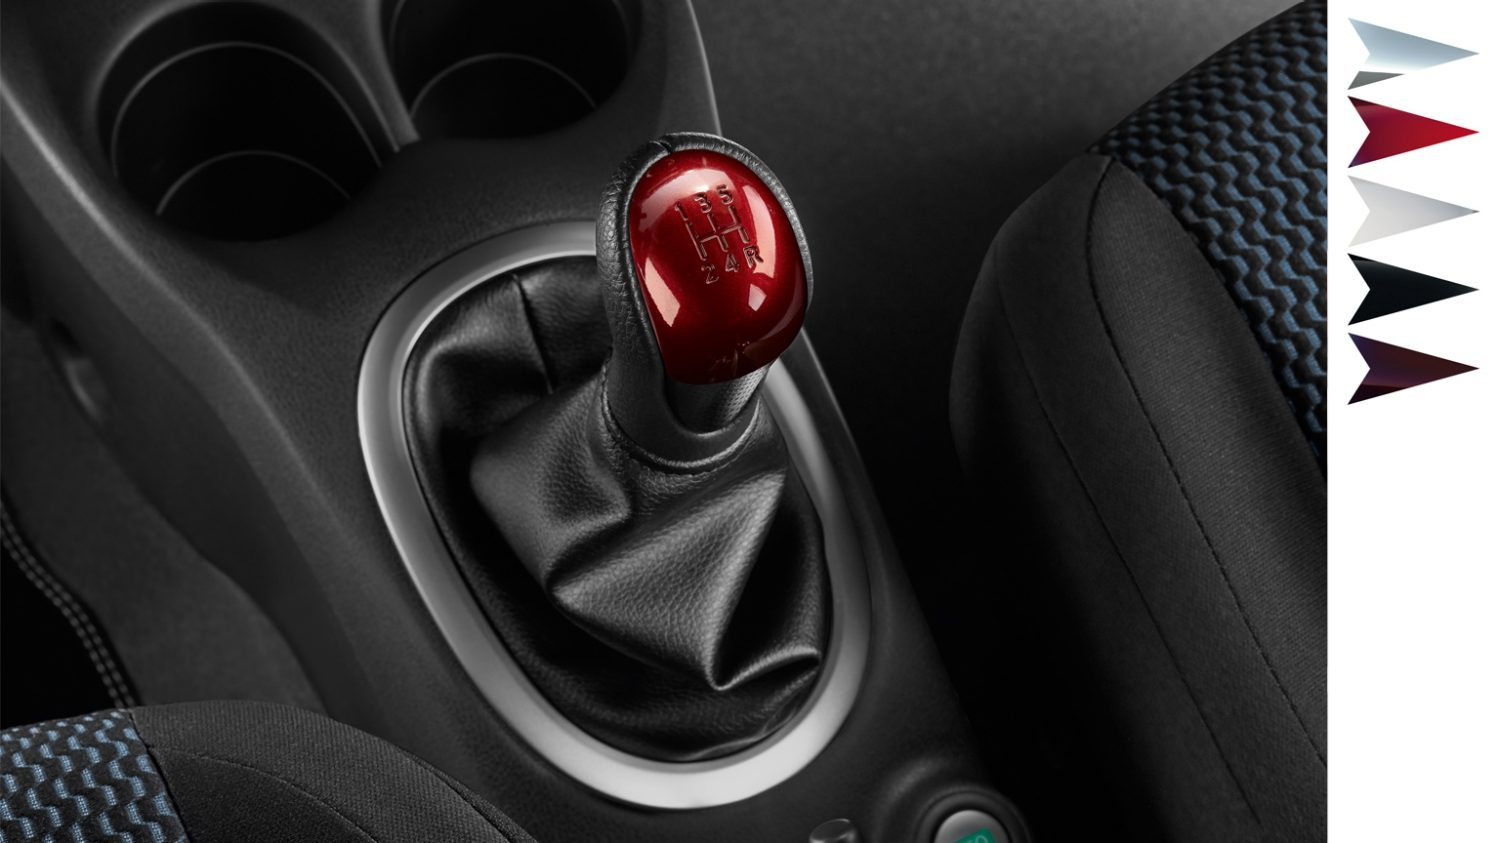 Nissan Note - Nissan design studio - Gear knob detroit red